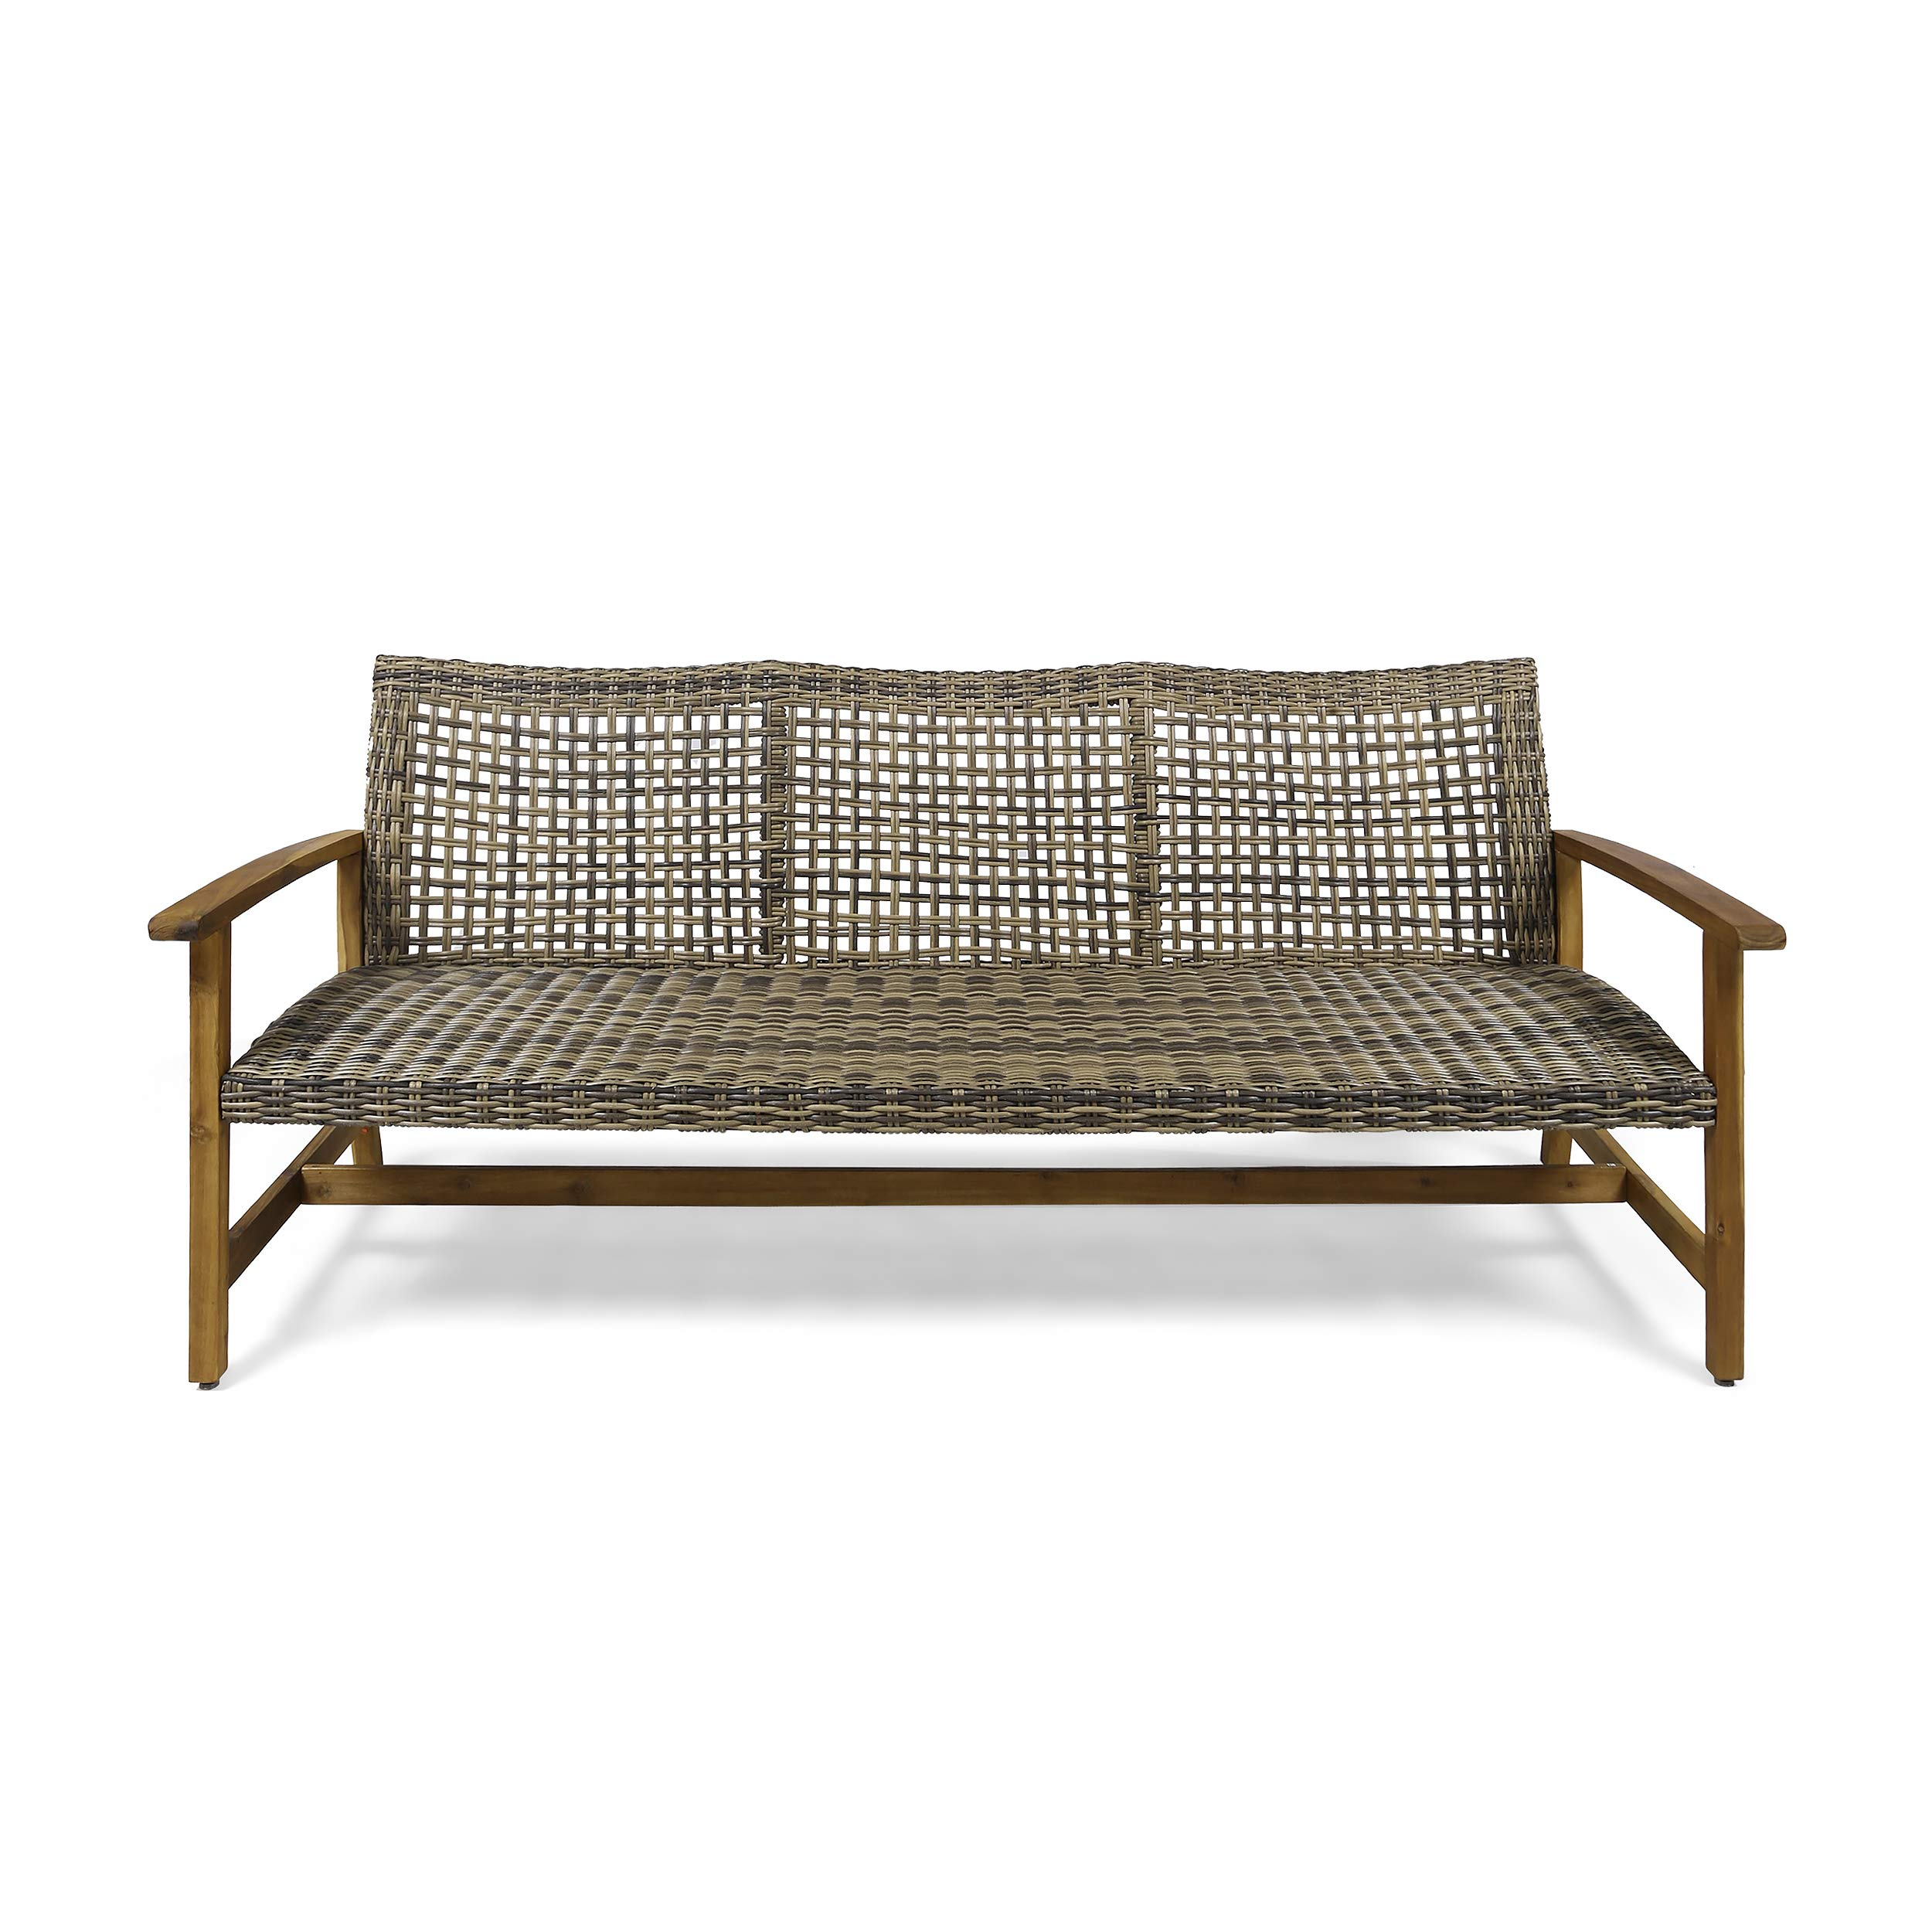 Christopher Knight Home 307797 Marcia Outdoor Wood Sofa, Wicker, Gray, Natural Stained Finish by Christopher Knight Home